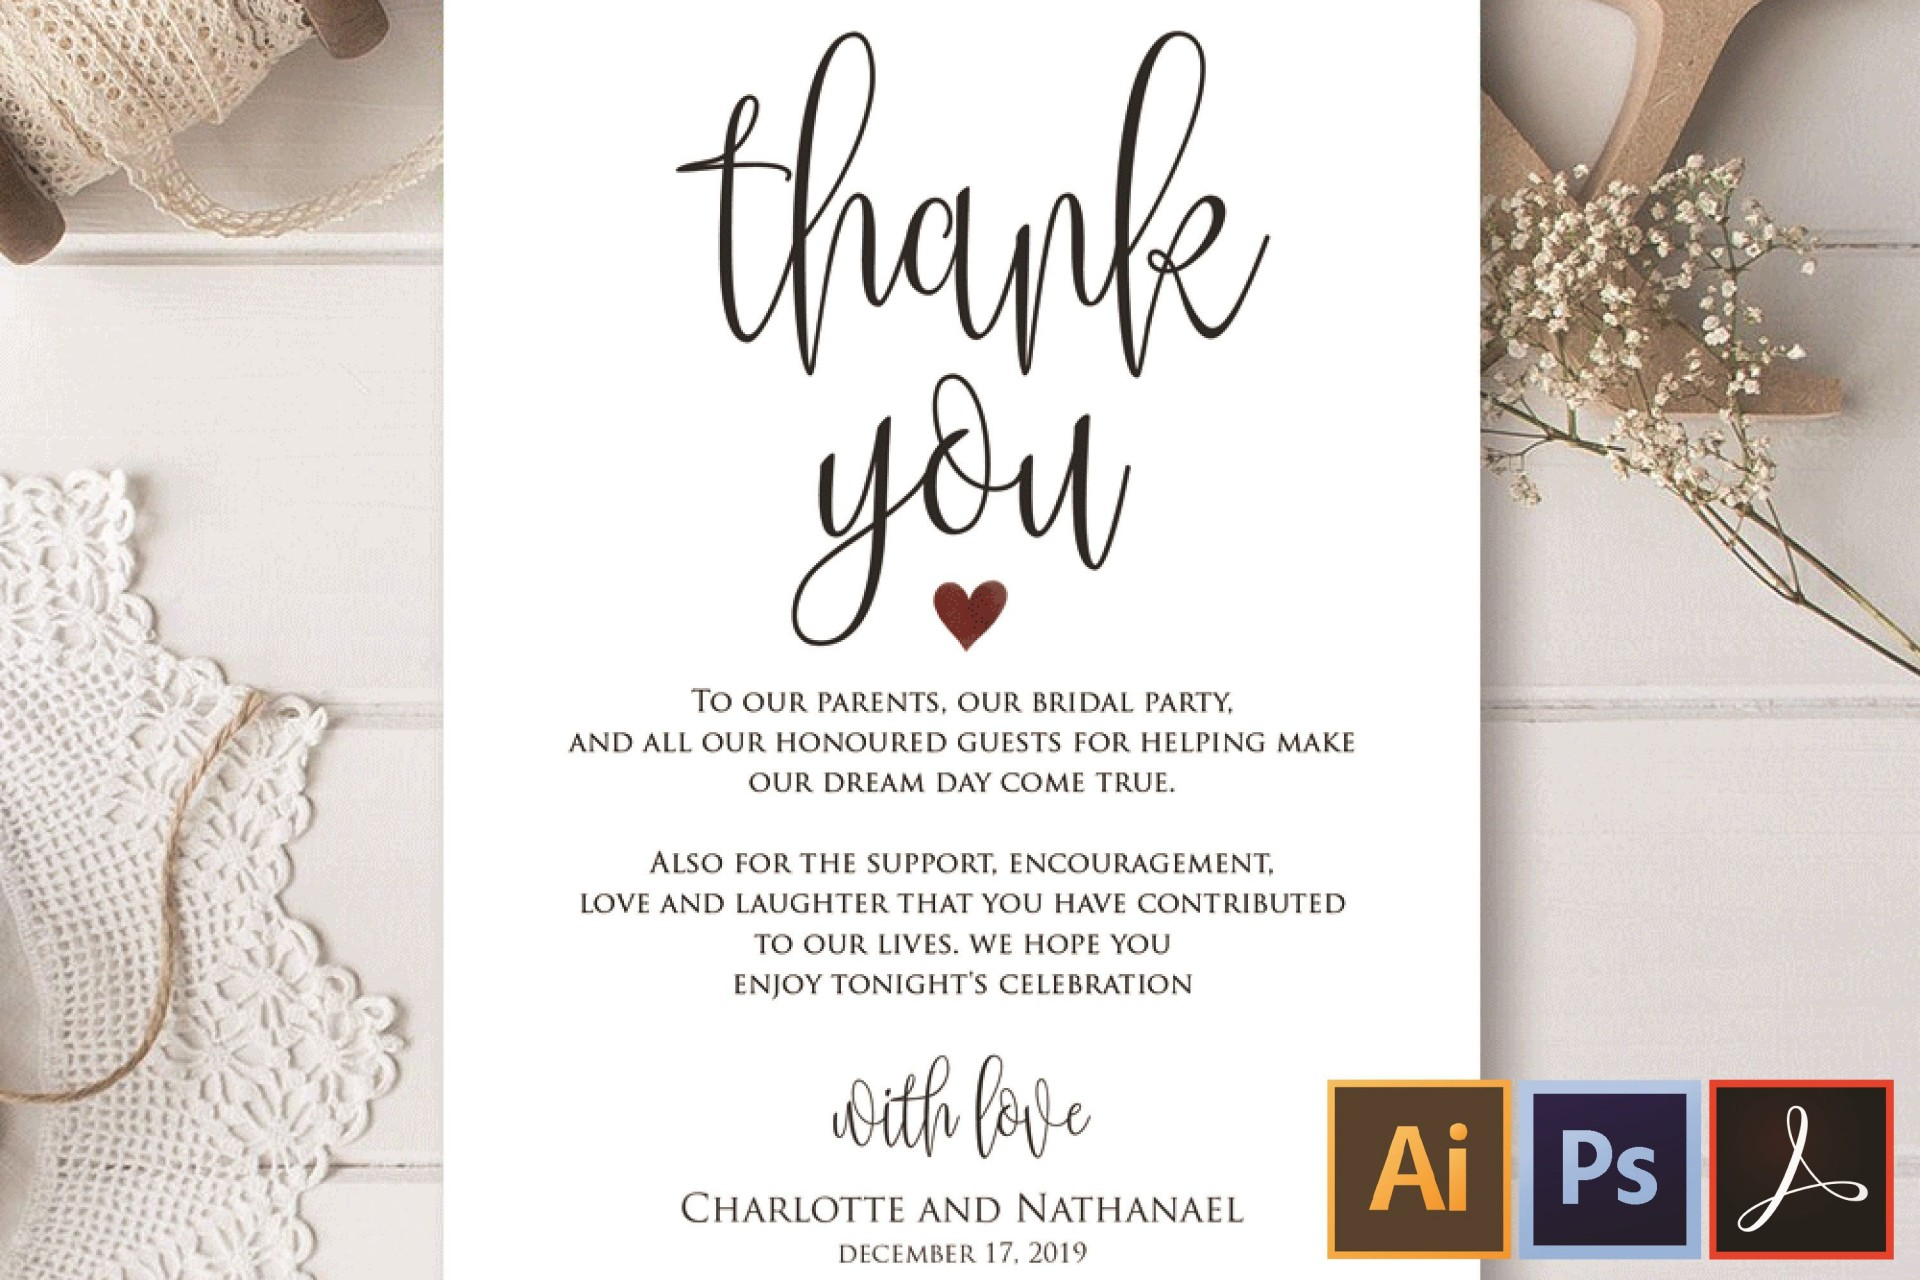 006 Magnificent Wedding Thank You Card Template Example  Message Sample Free Download Wording For Money1920